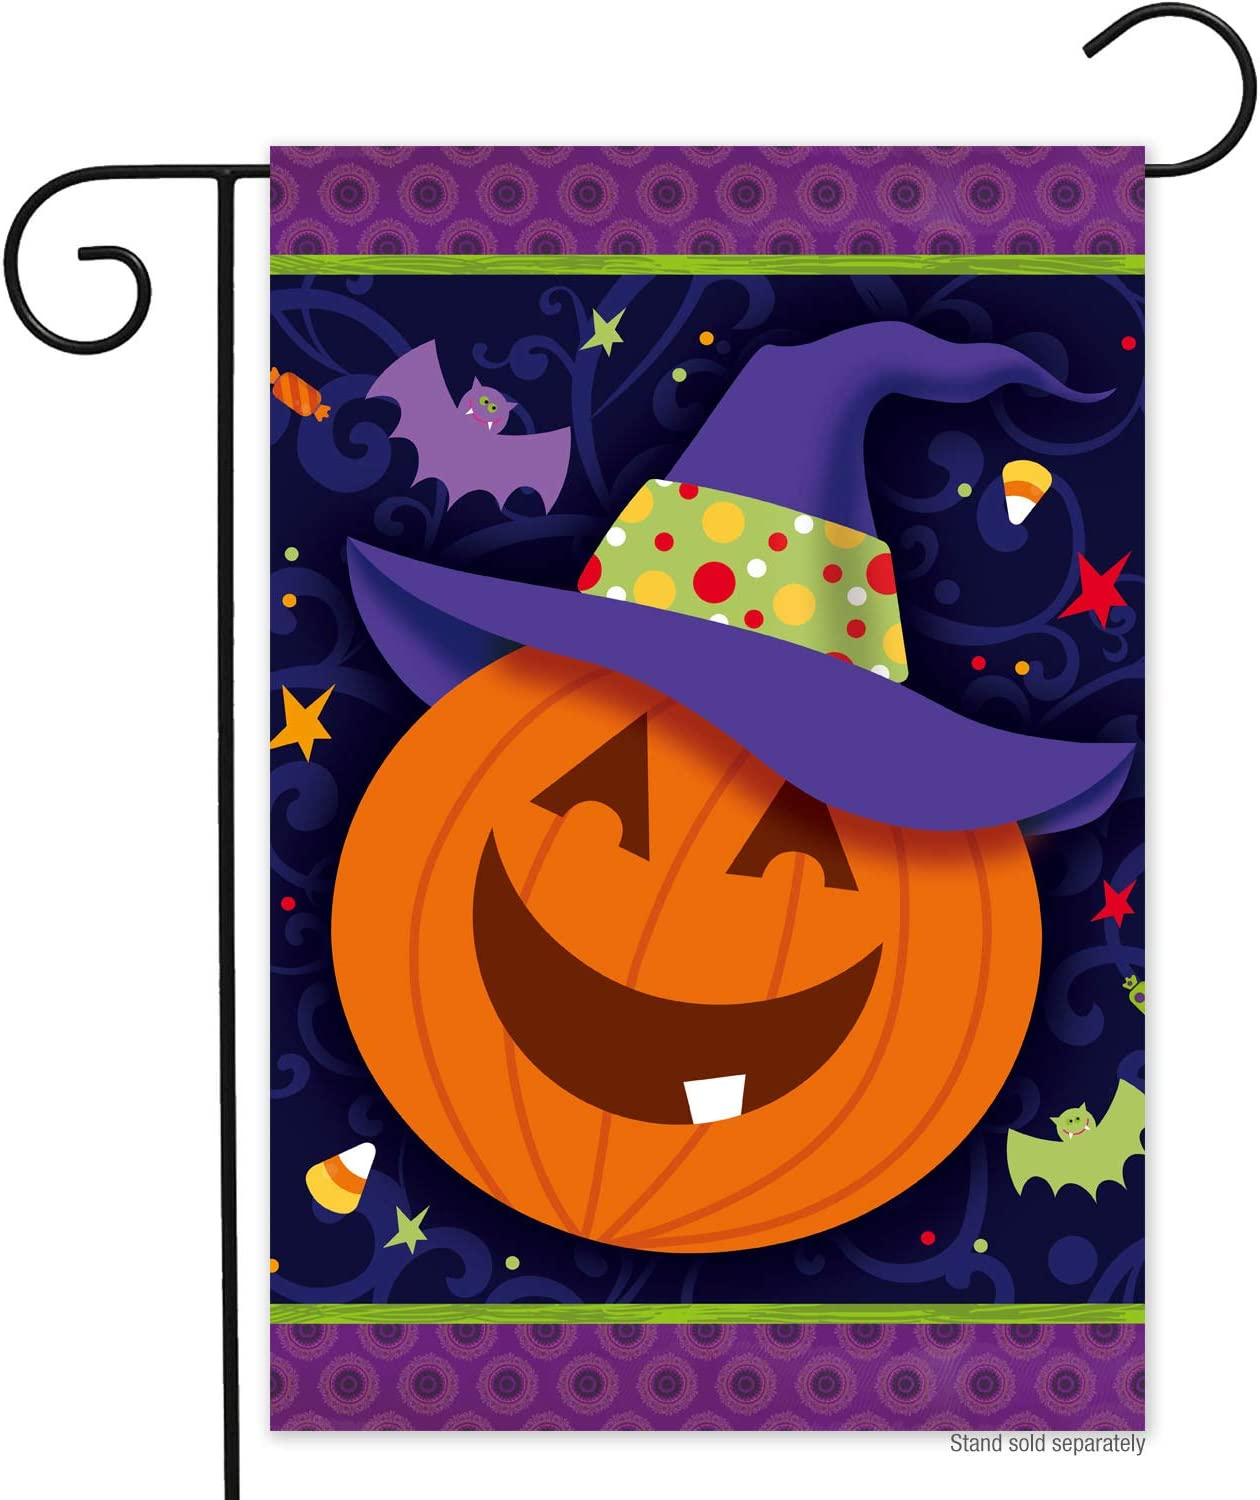 N/P Fall Happy Halloween Pumpkin Garden Flag 12x18- Double Sided Smiley Pumpkin Lantern Yard Flags Banner Vivid Colors Weather Resistant Halloween Garden Decorations Farmhouse